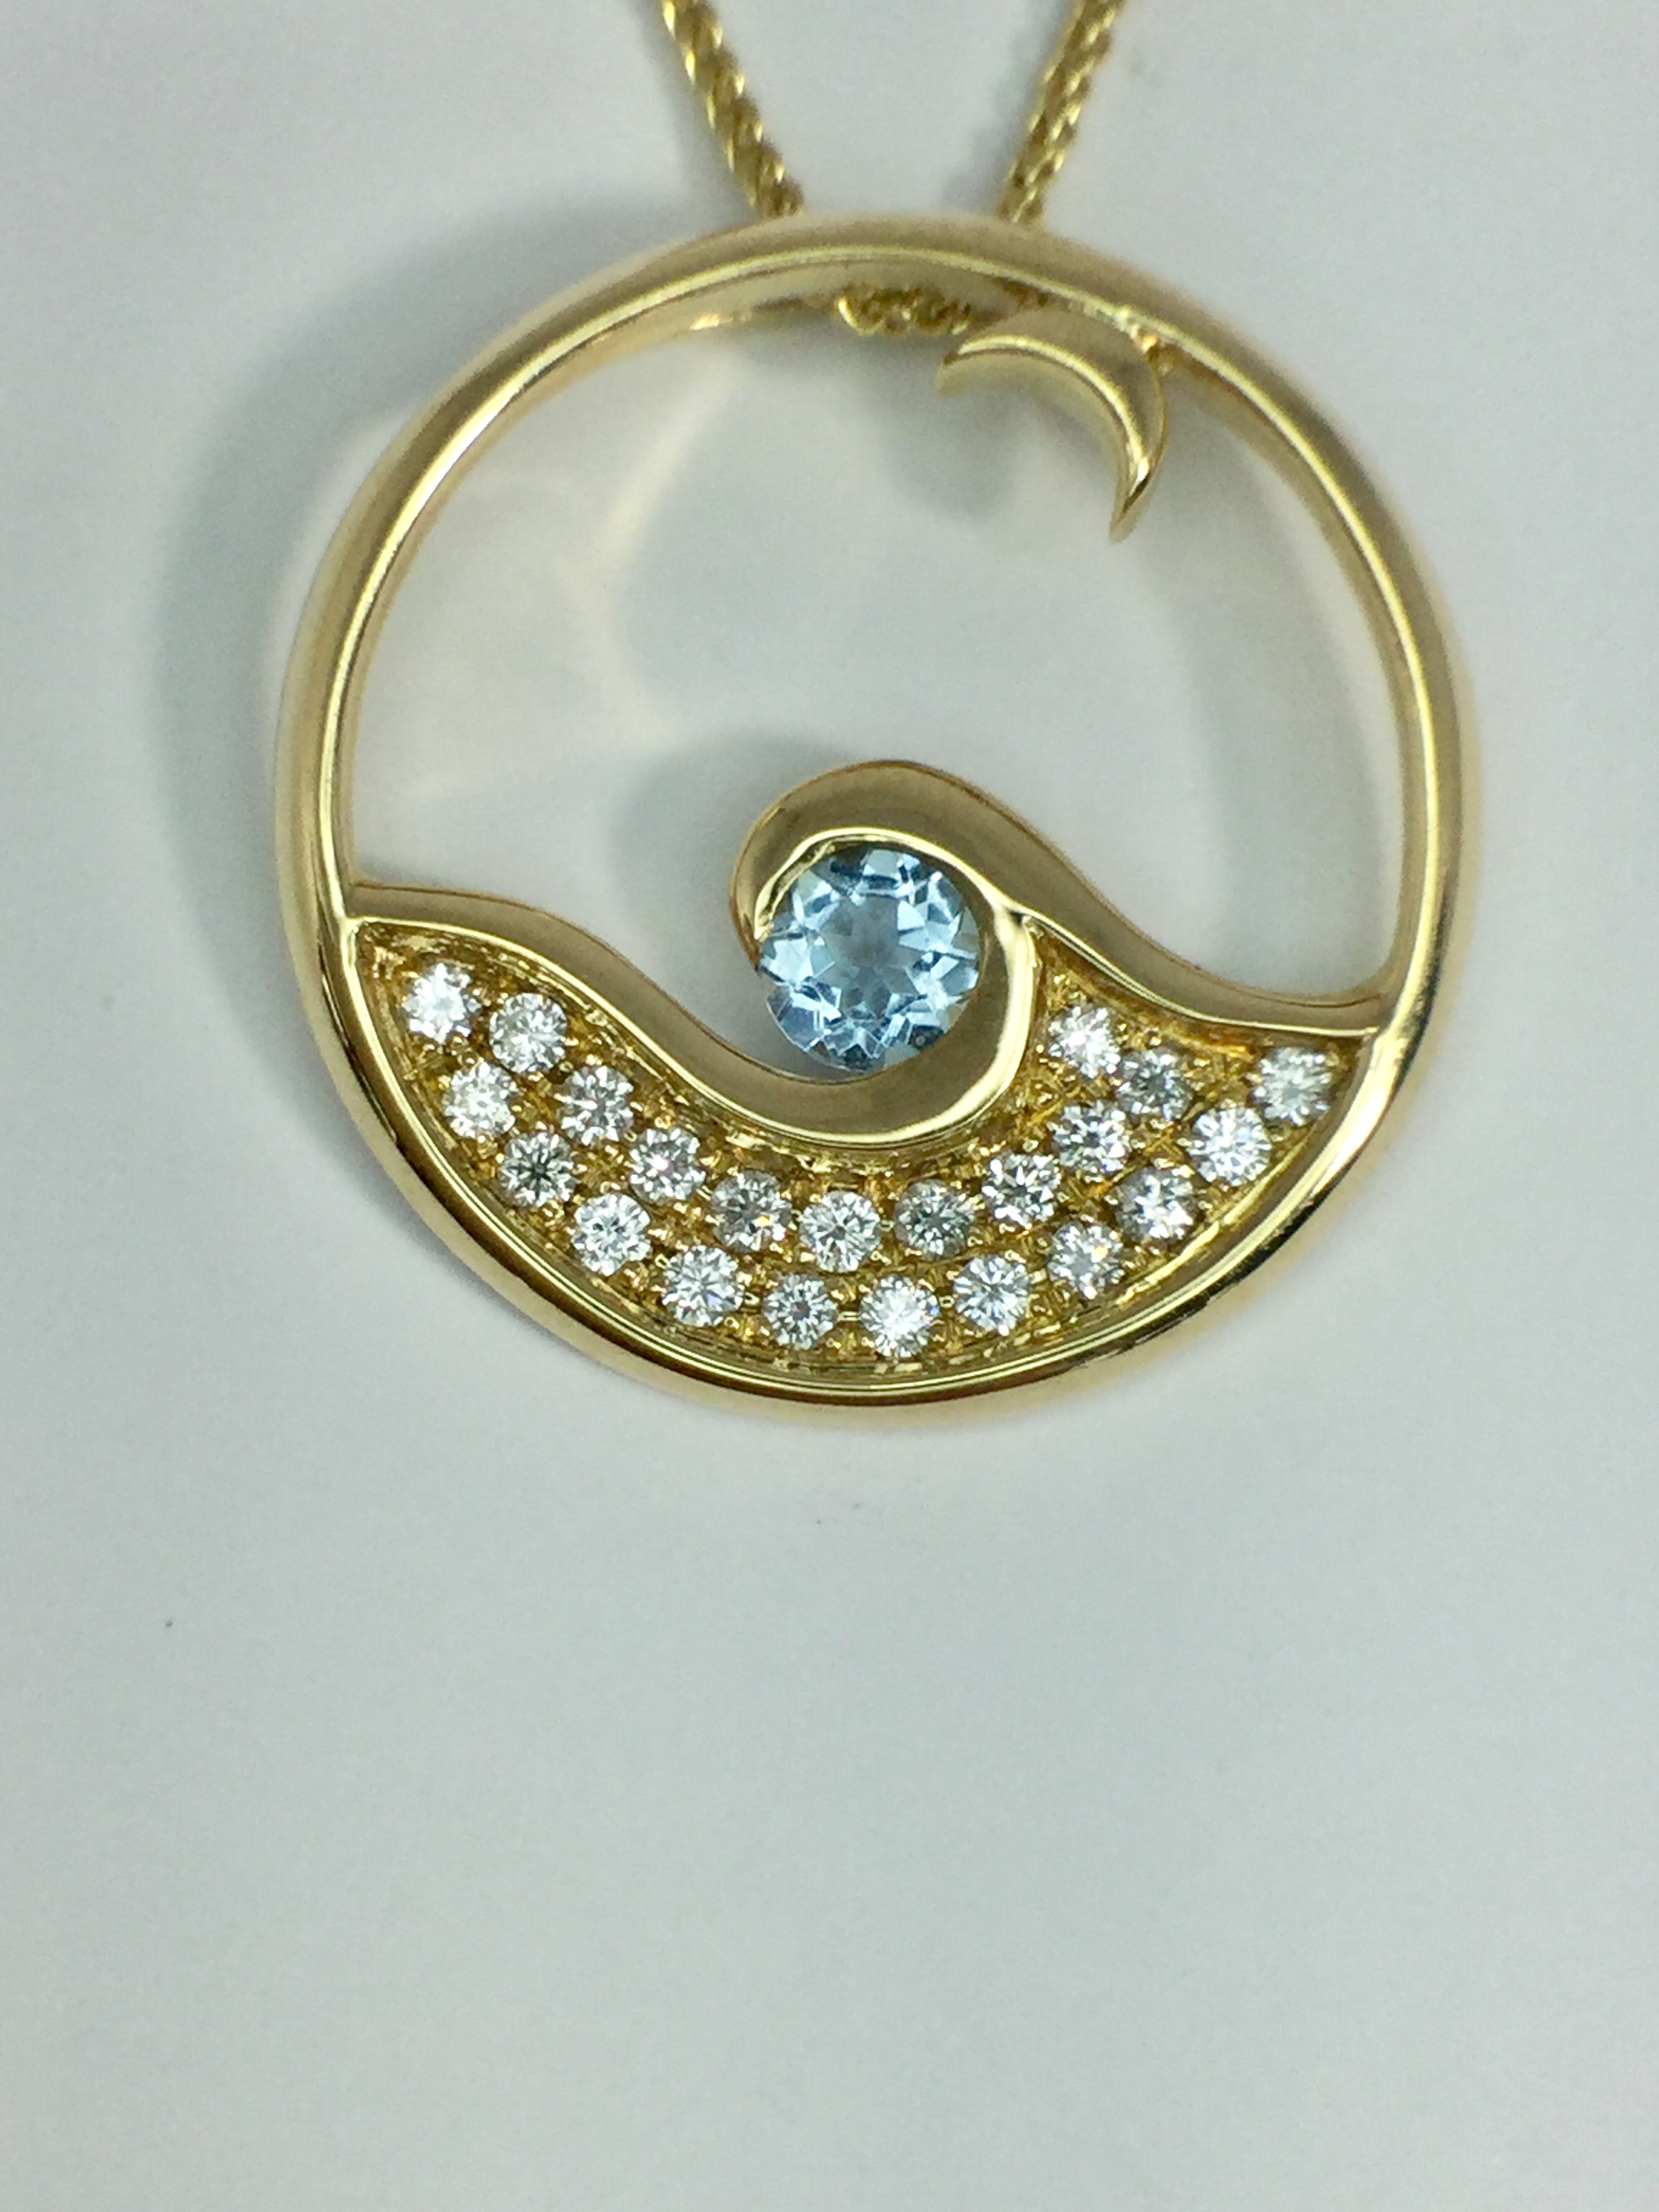 14k Yellow Gold Moonglow Necklace with Aquamarine and Diamonds